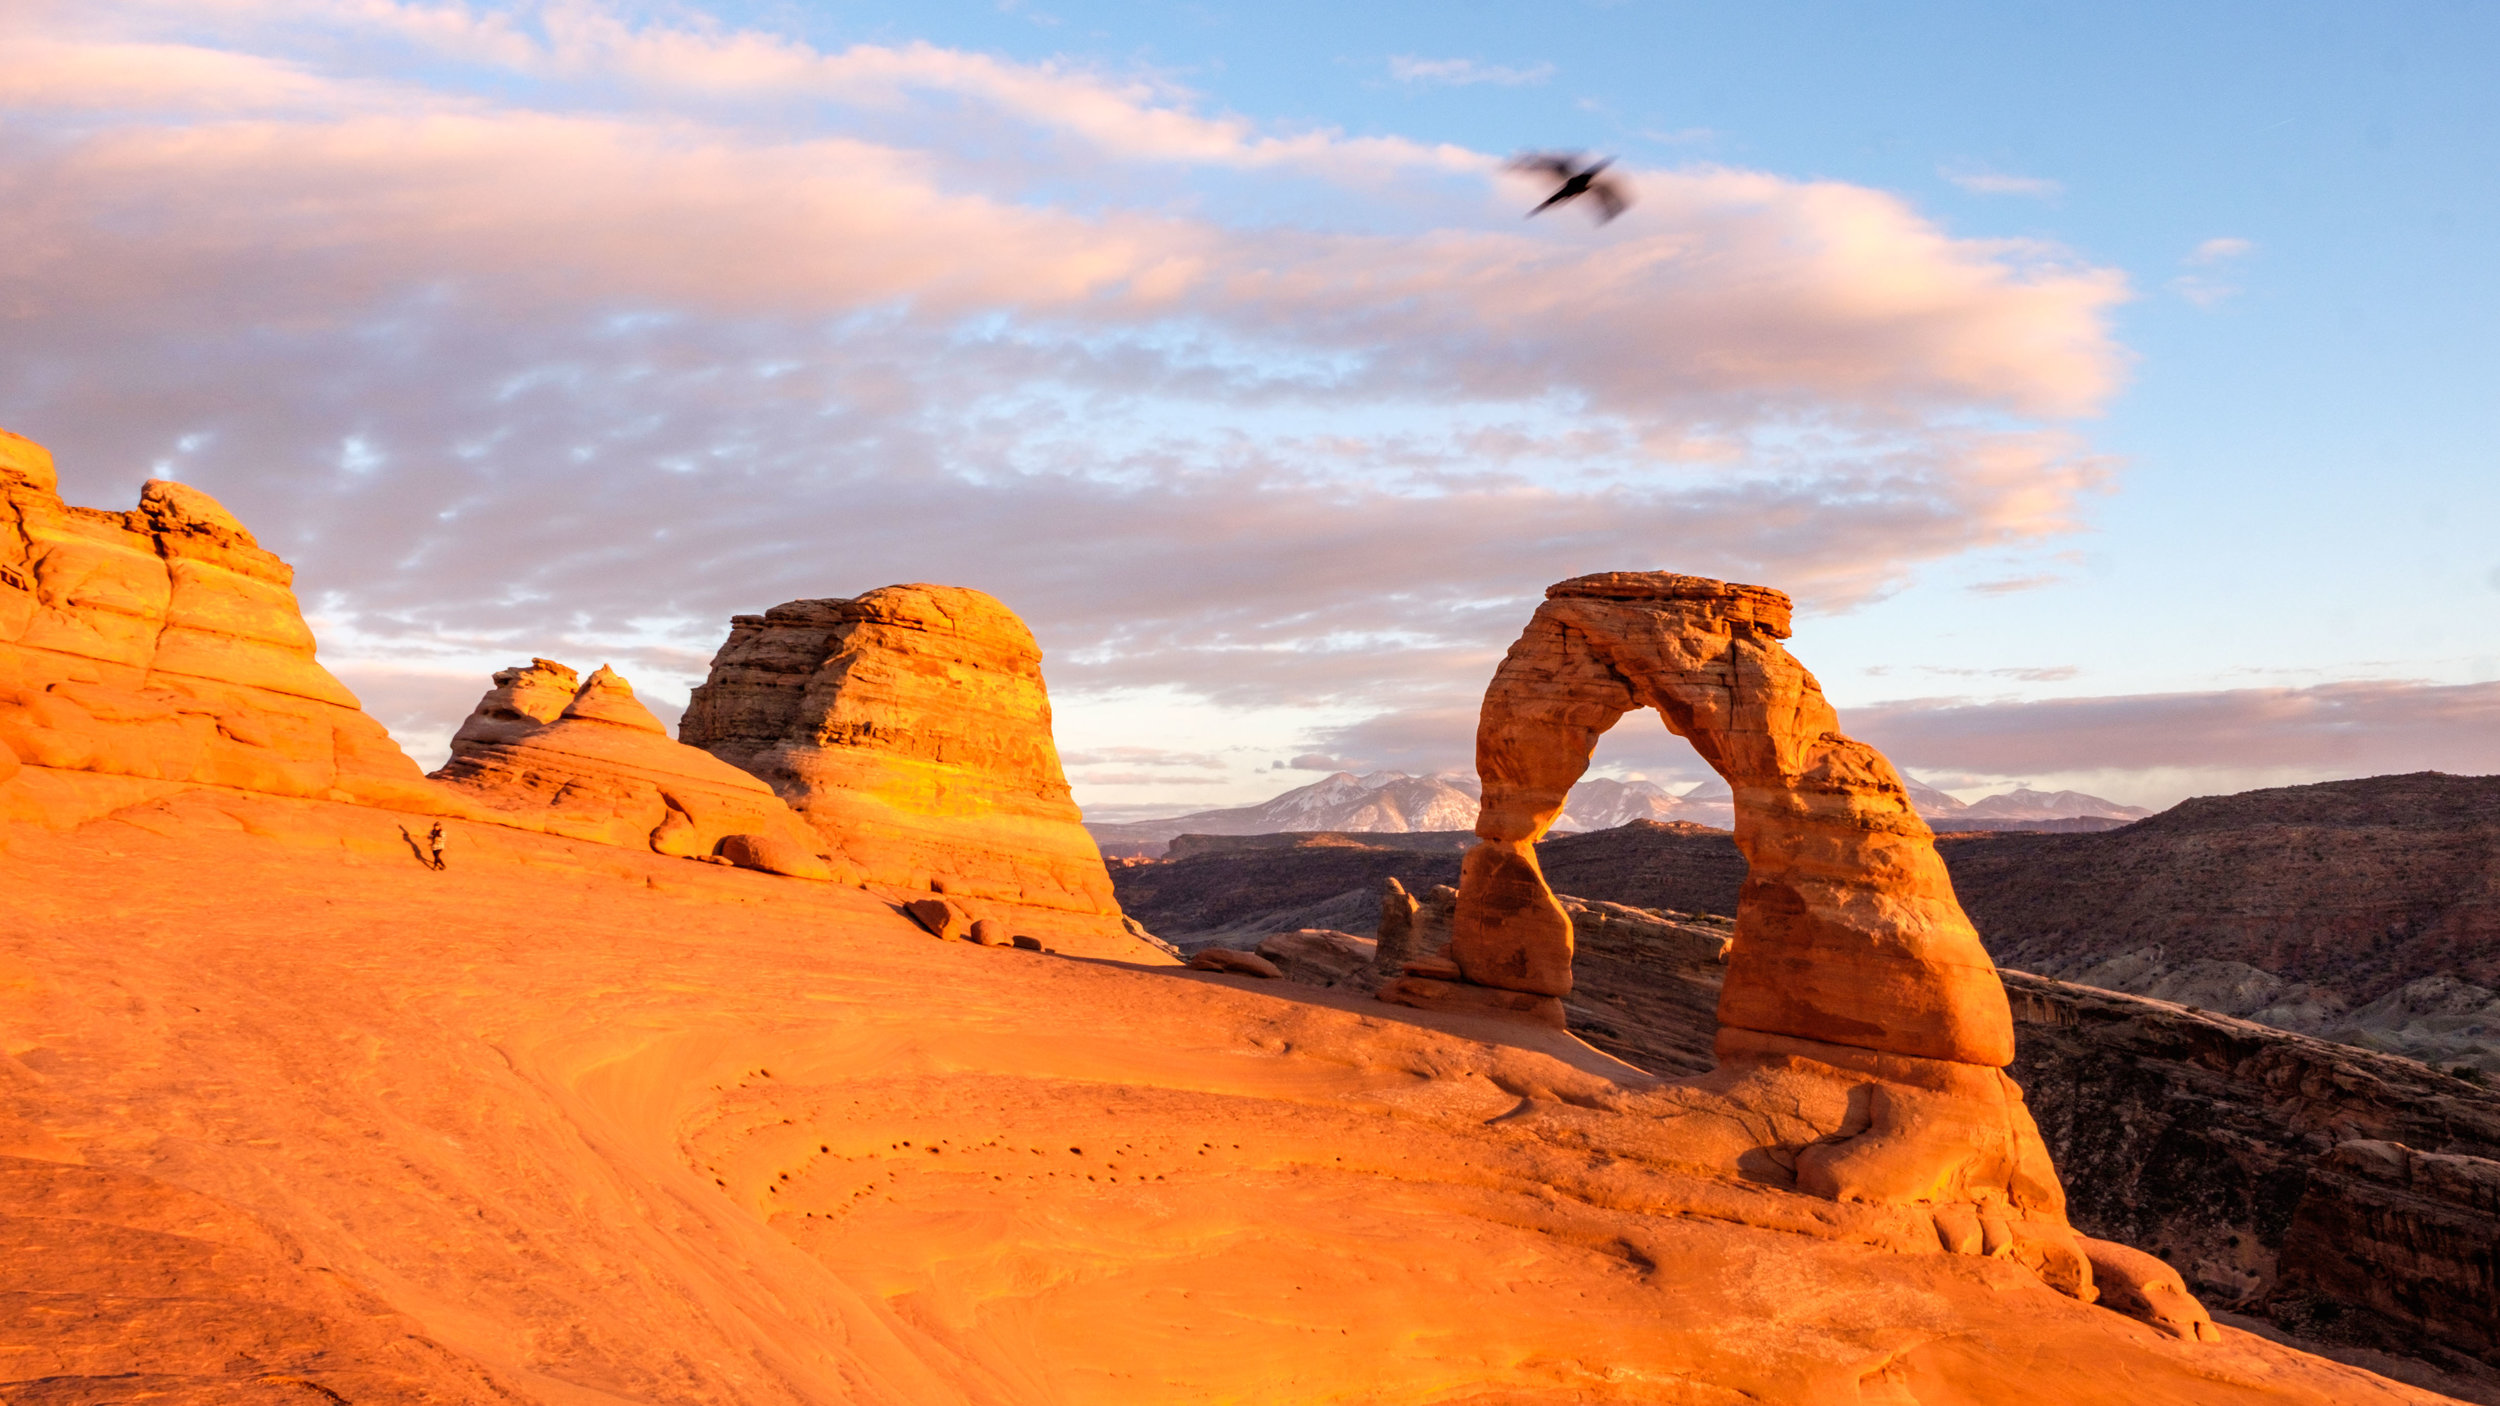 The sunset at Delicate Arch is a very happening time and place. It takes your breath away!